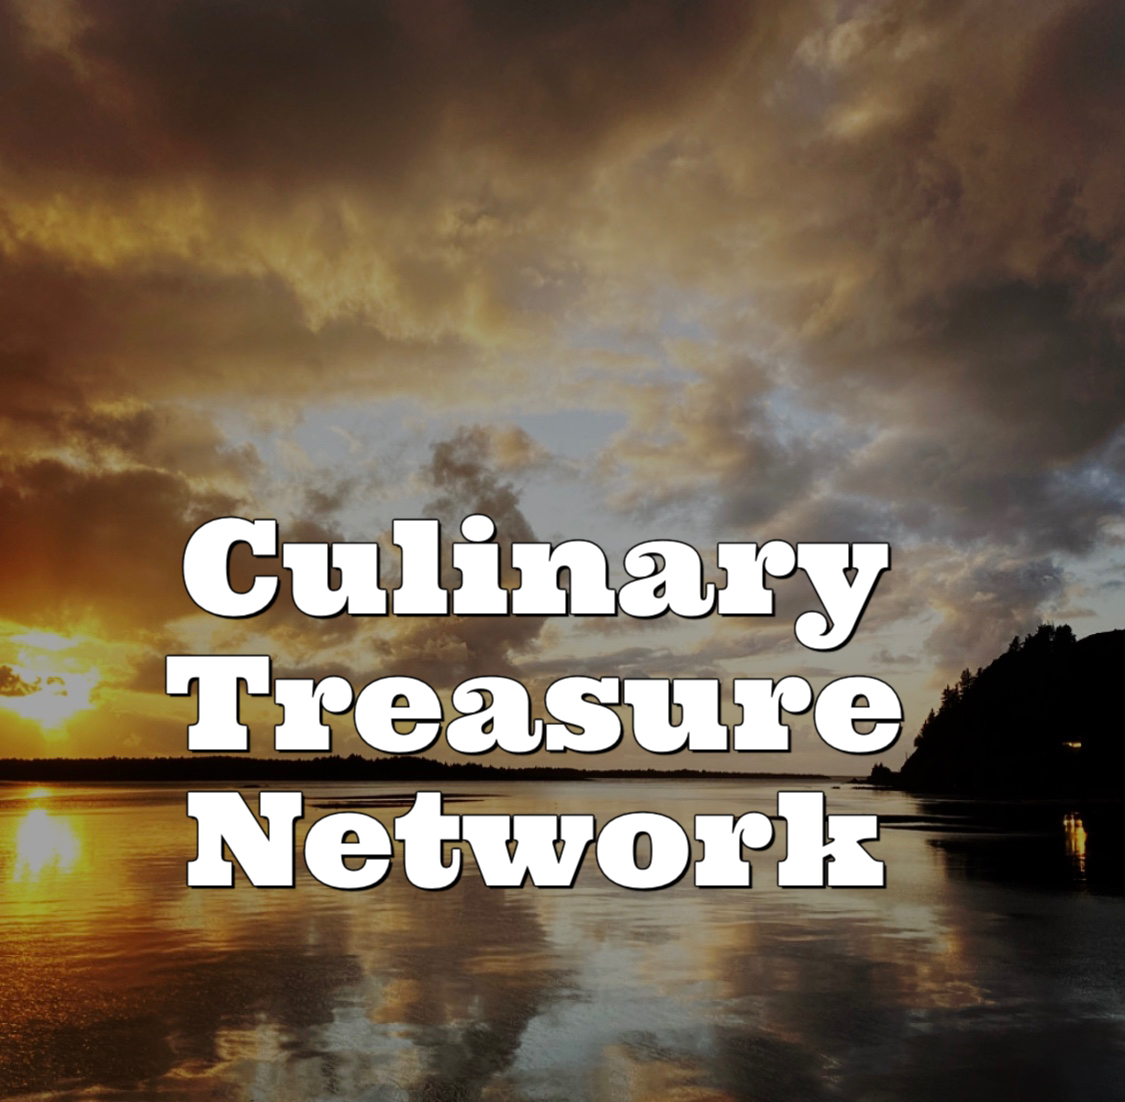 Culinary Treasure Network Steven Shomler